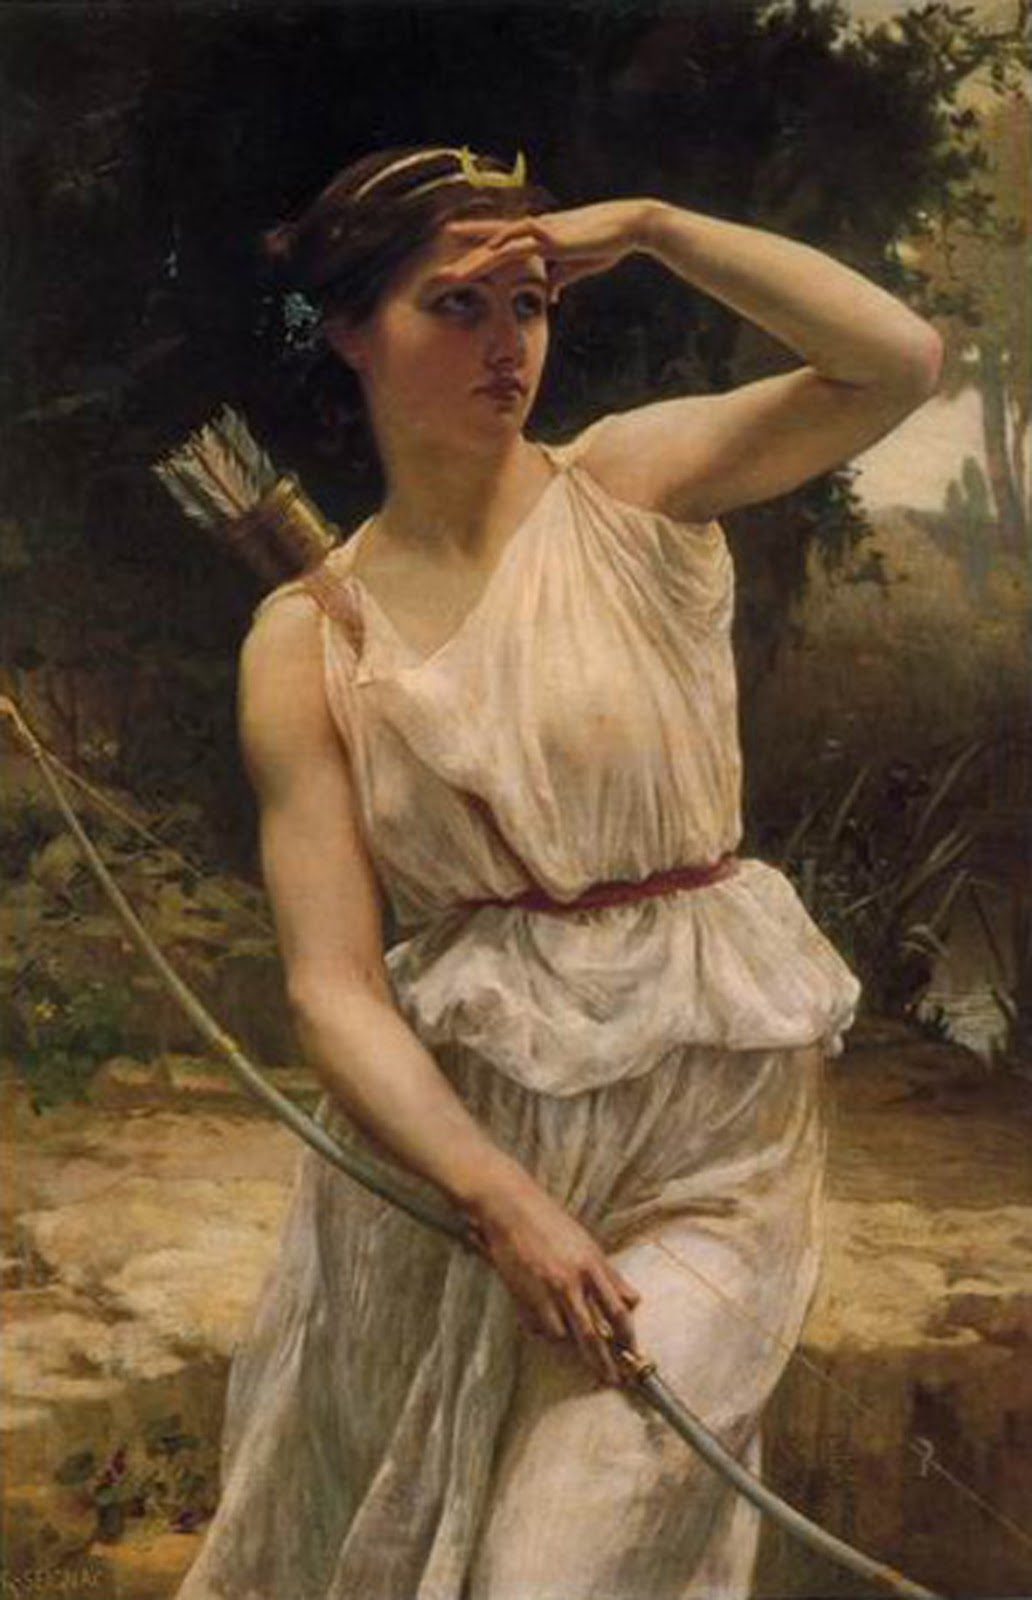 'Artemis', Diana the goddess of Greek mythology